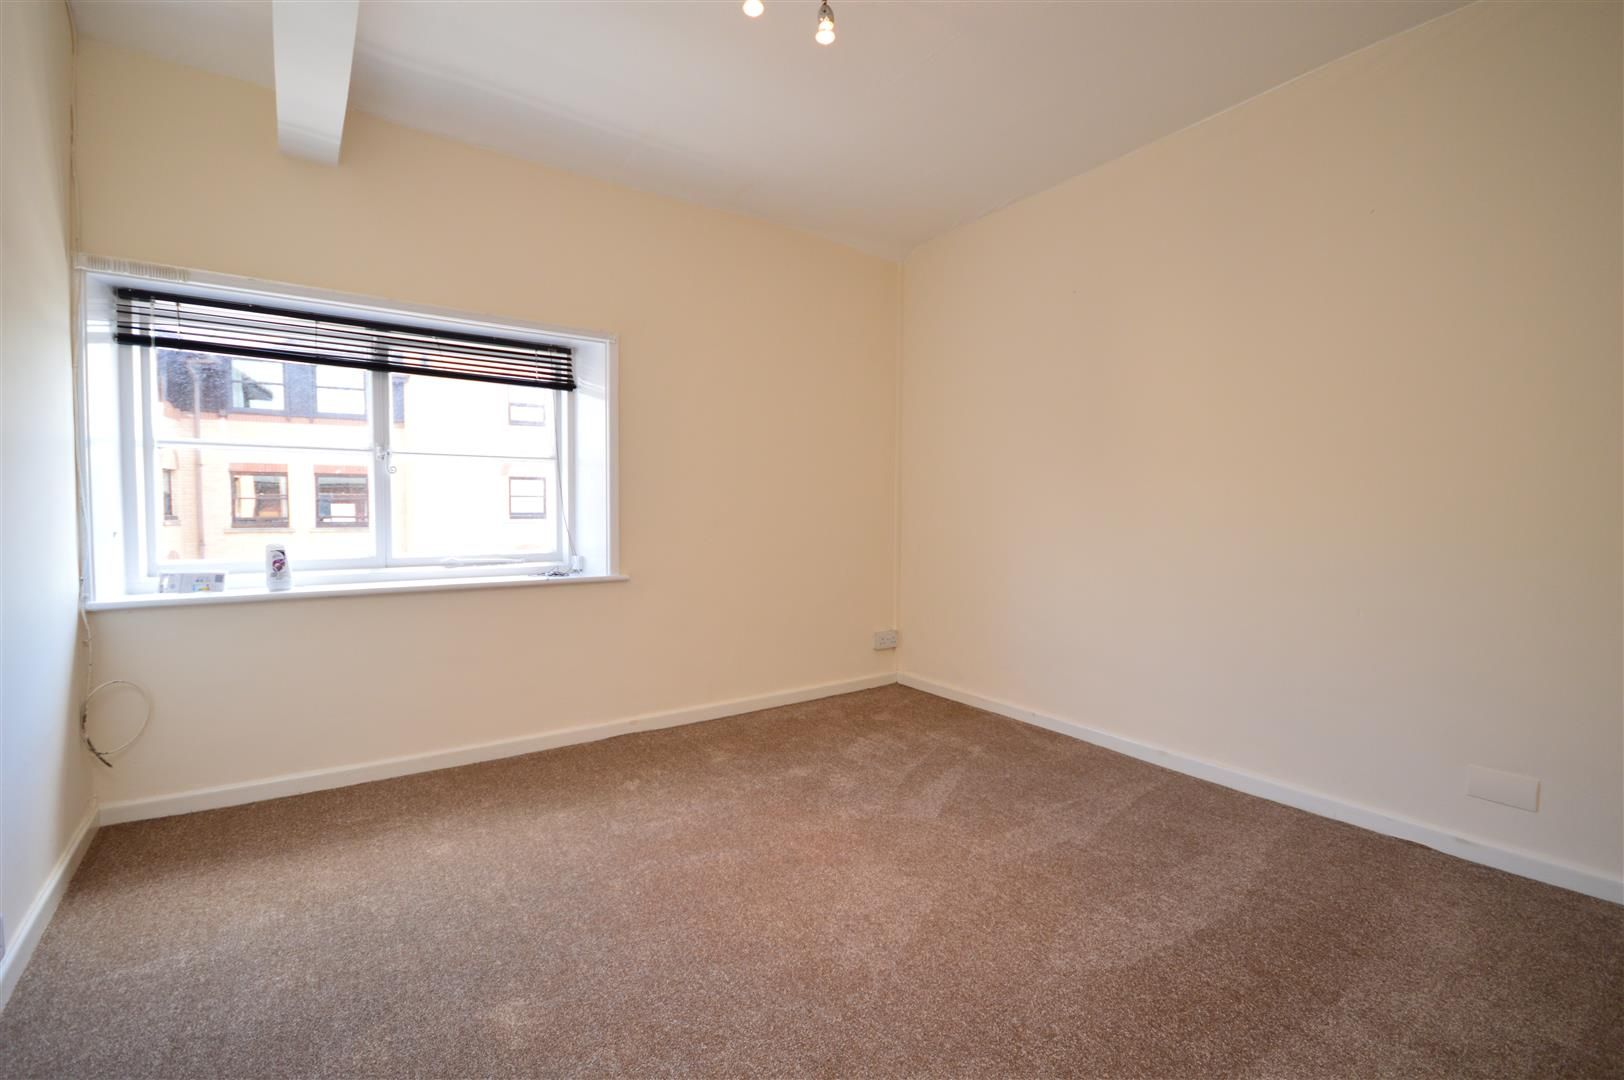 1 bed flat to rent, HR4